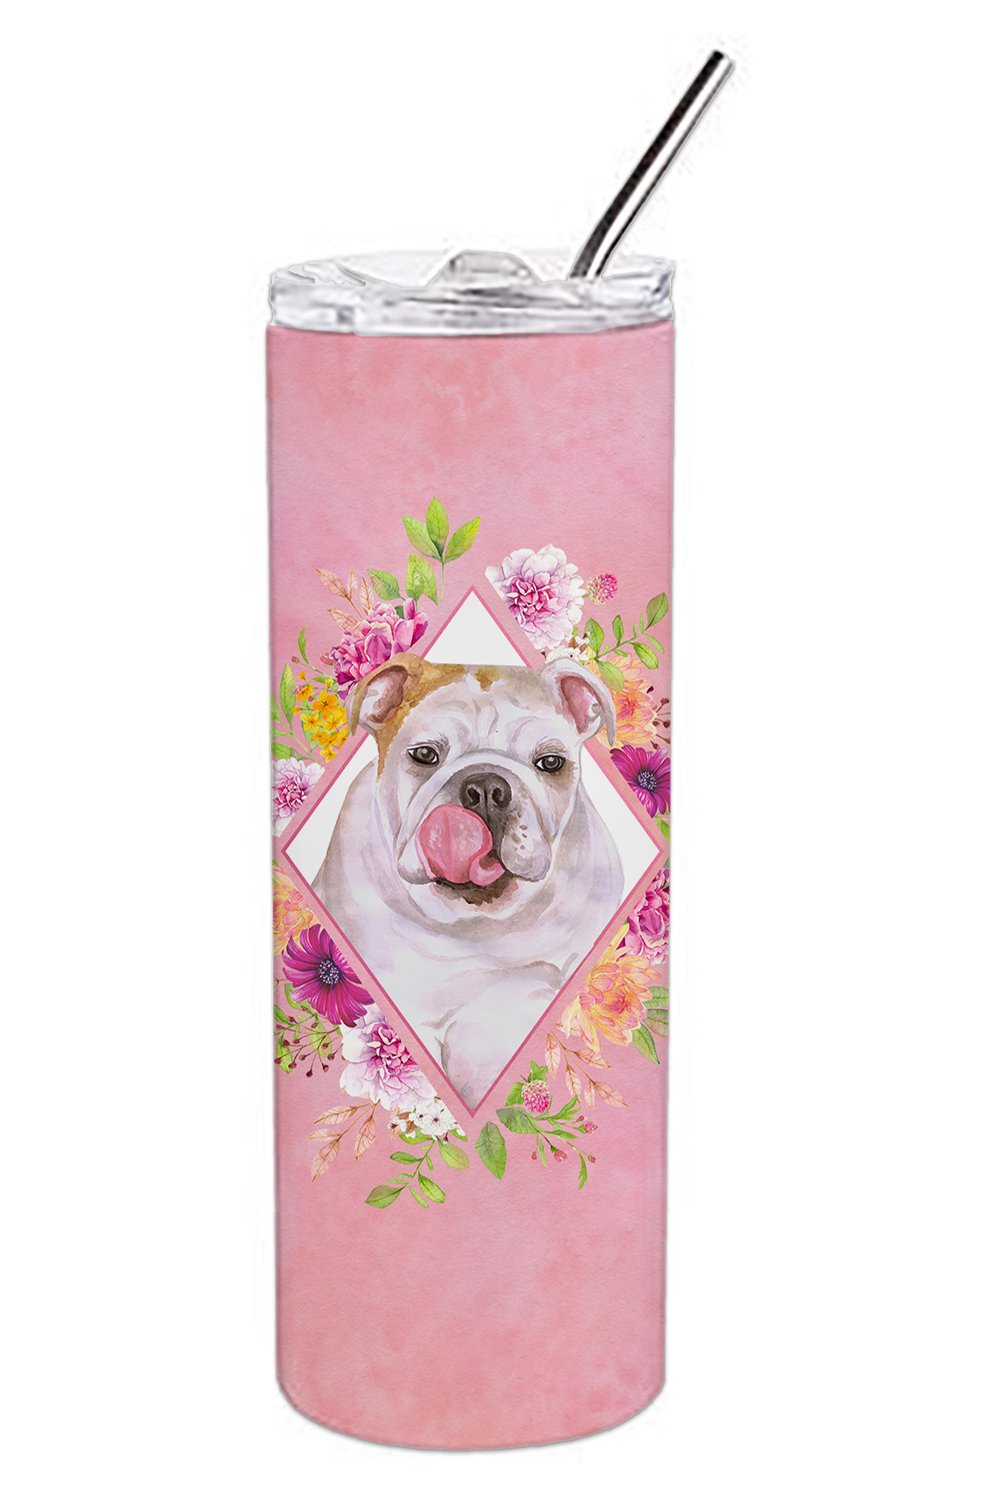 English Bulldog Pink Flowers Double Walled Stainless Steel 20 oz Skinny Tumbler CK4140TBL20 by Caroline's Treasures